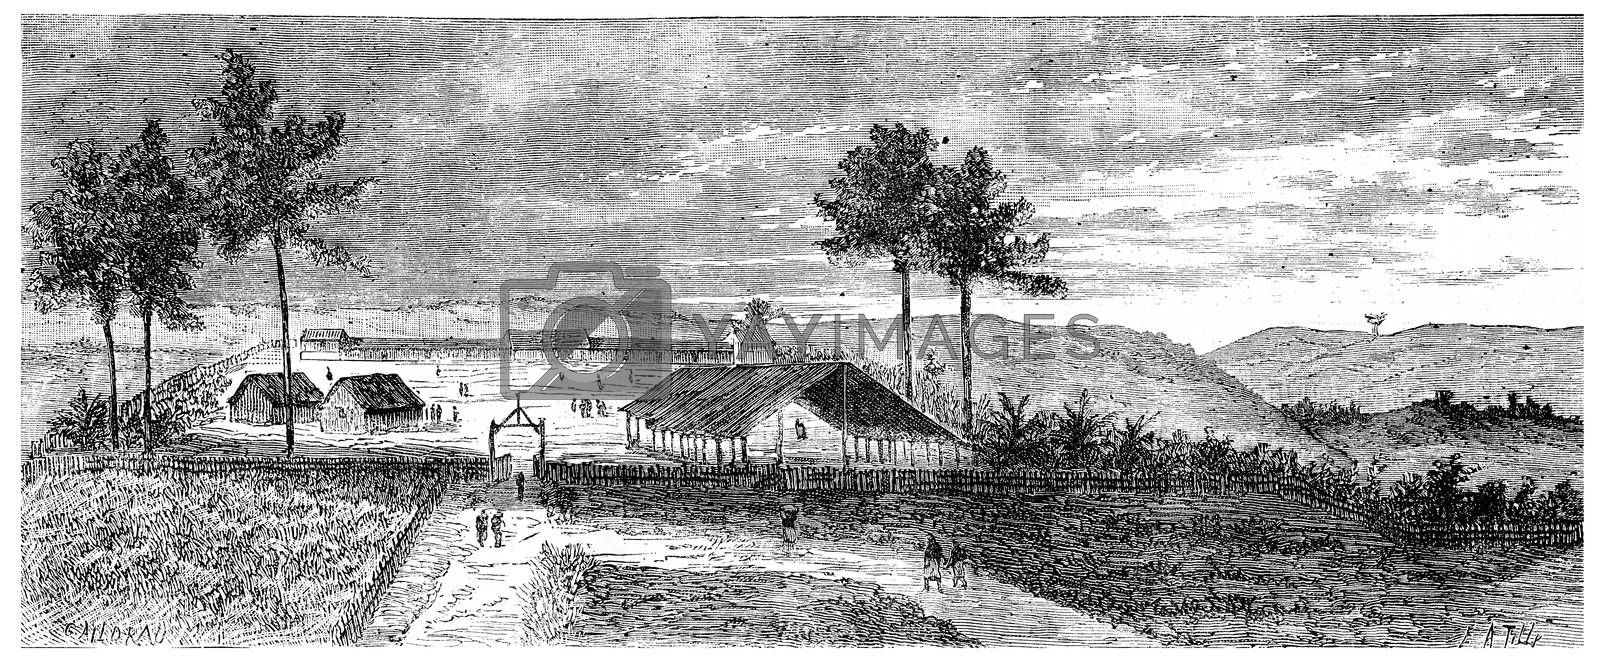 View of Franceville, vintage engraved illustration. Journal des Voyage, Travel Journal, (1880-81).